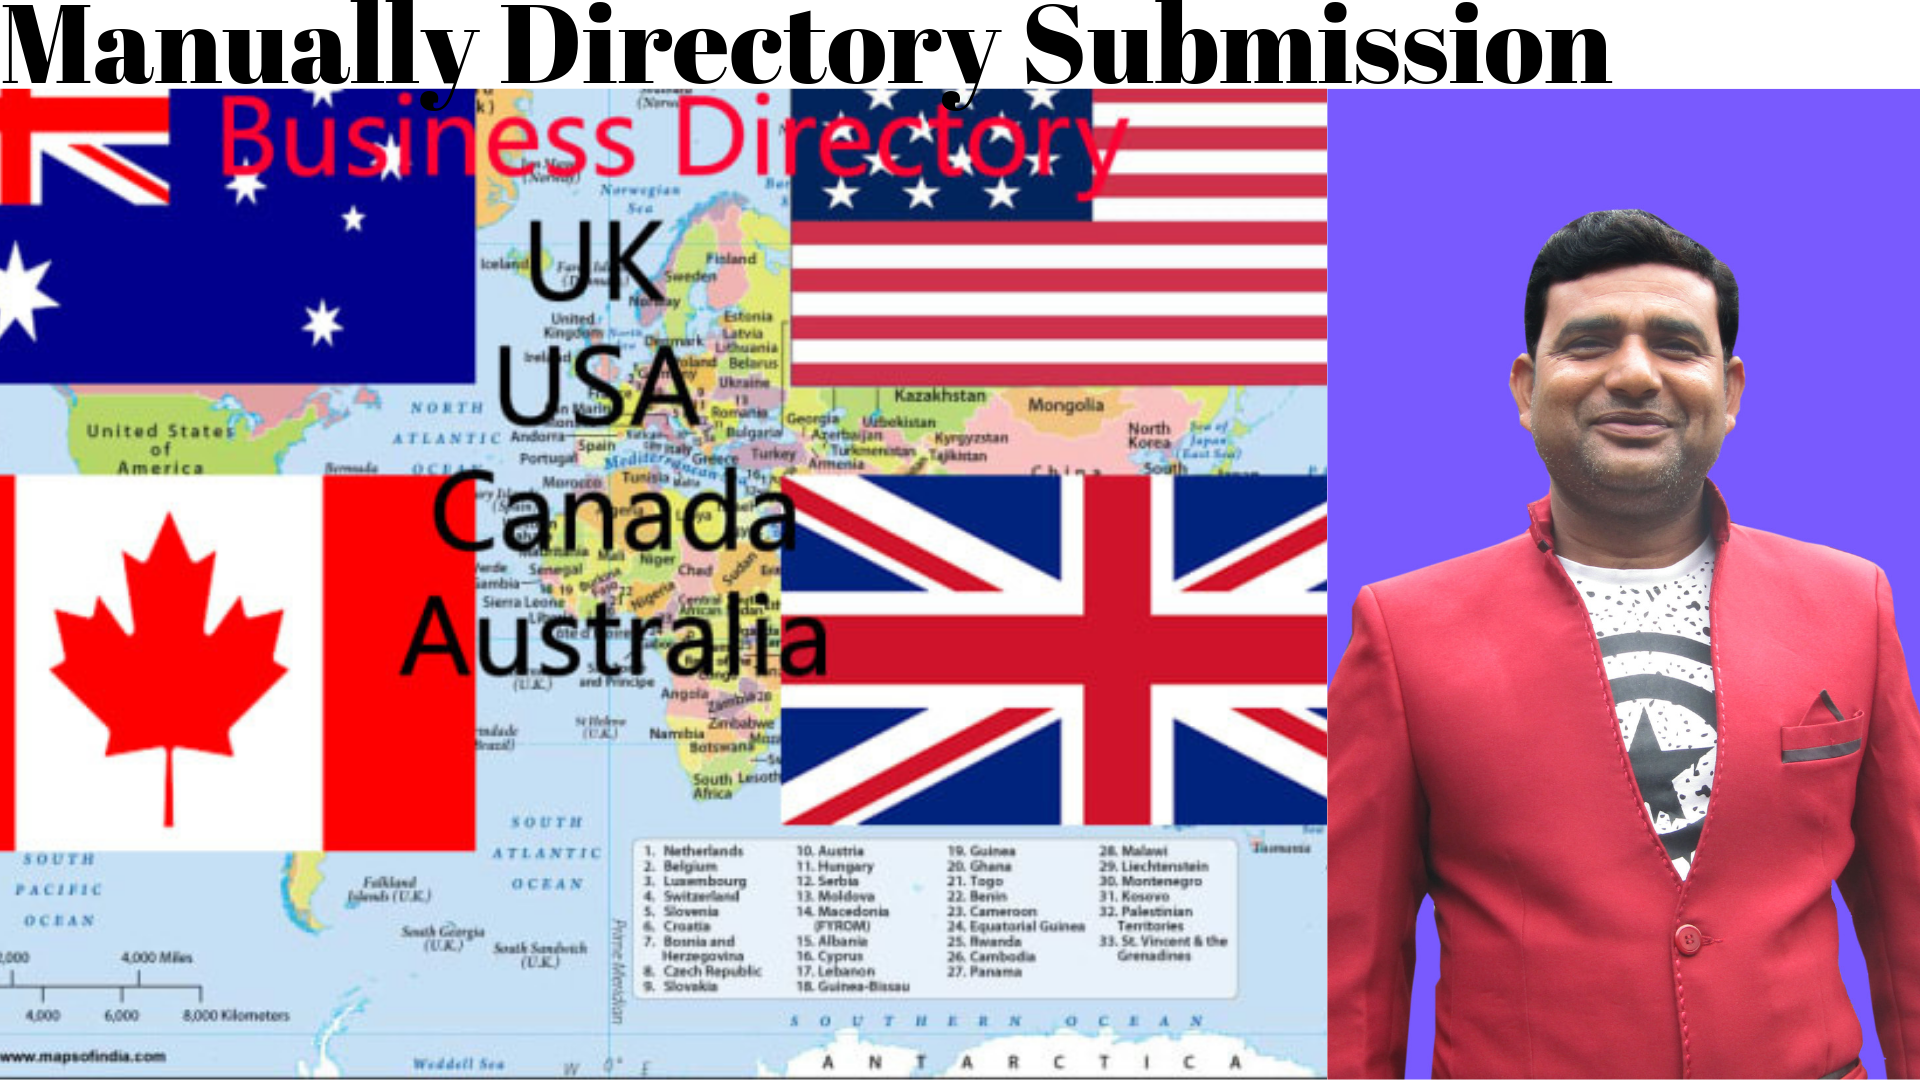 I Can Do Manually Directory Submission And Forum Posting With High Da PR Only